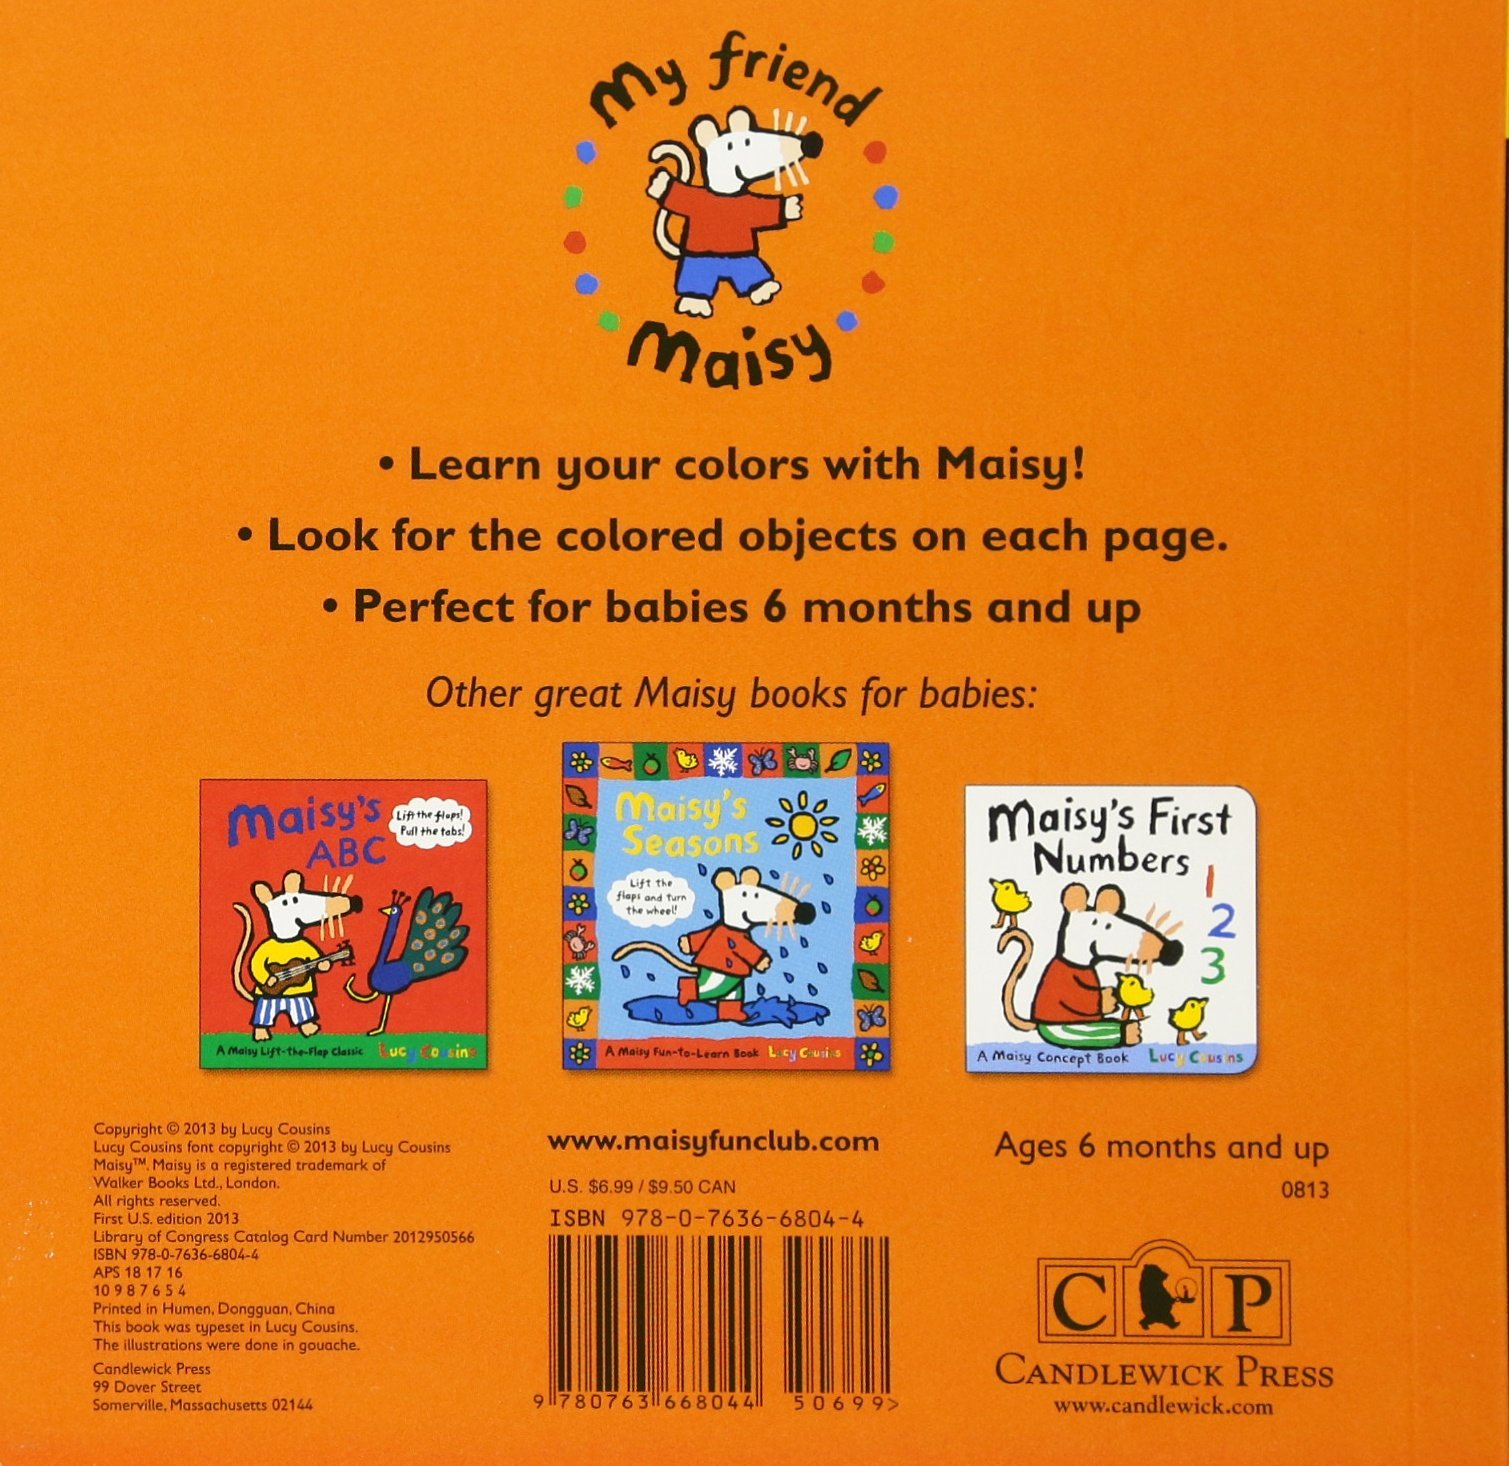 Amazon.com: Maisy's First Colors: A Maisy Concept Book (9780763668044):  Lucy Cousins: Books